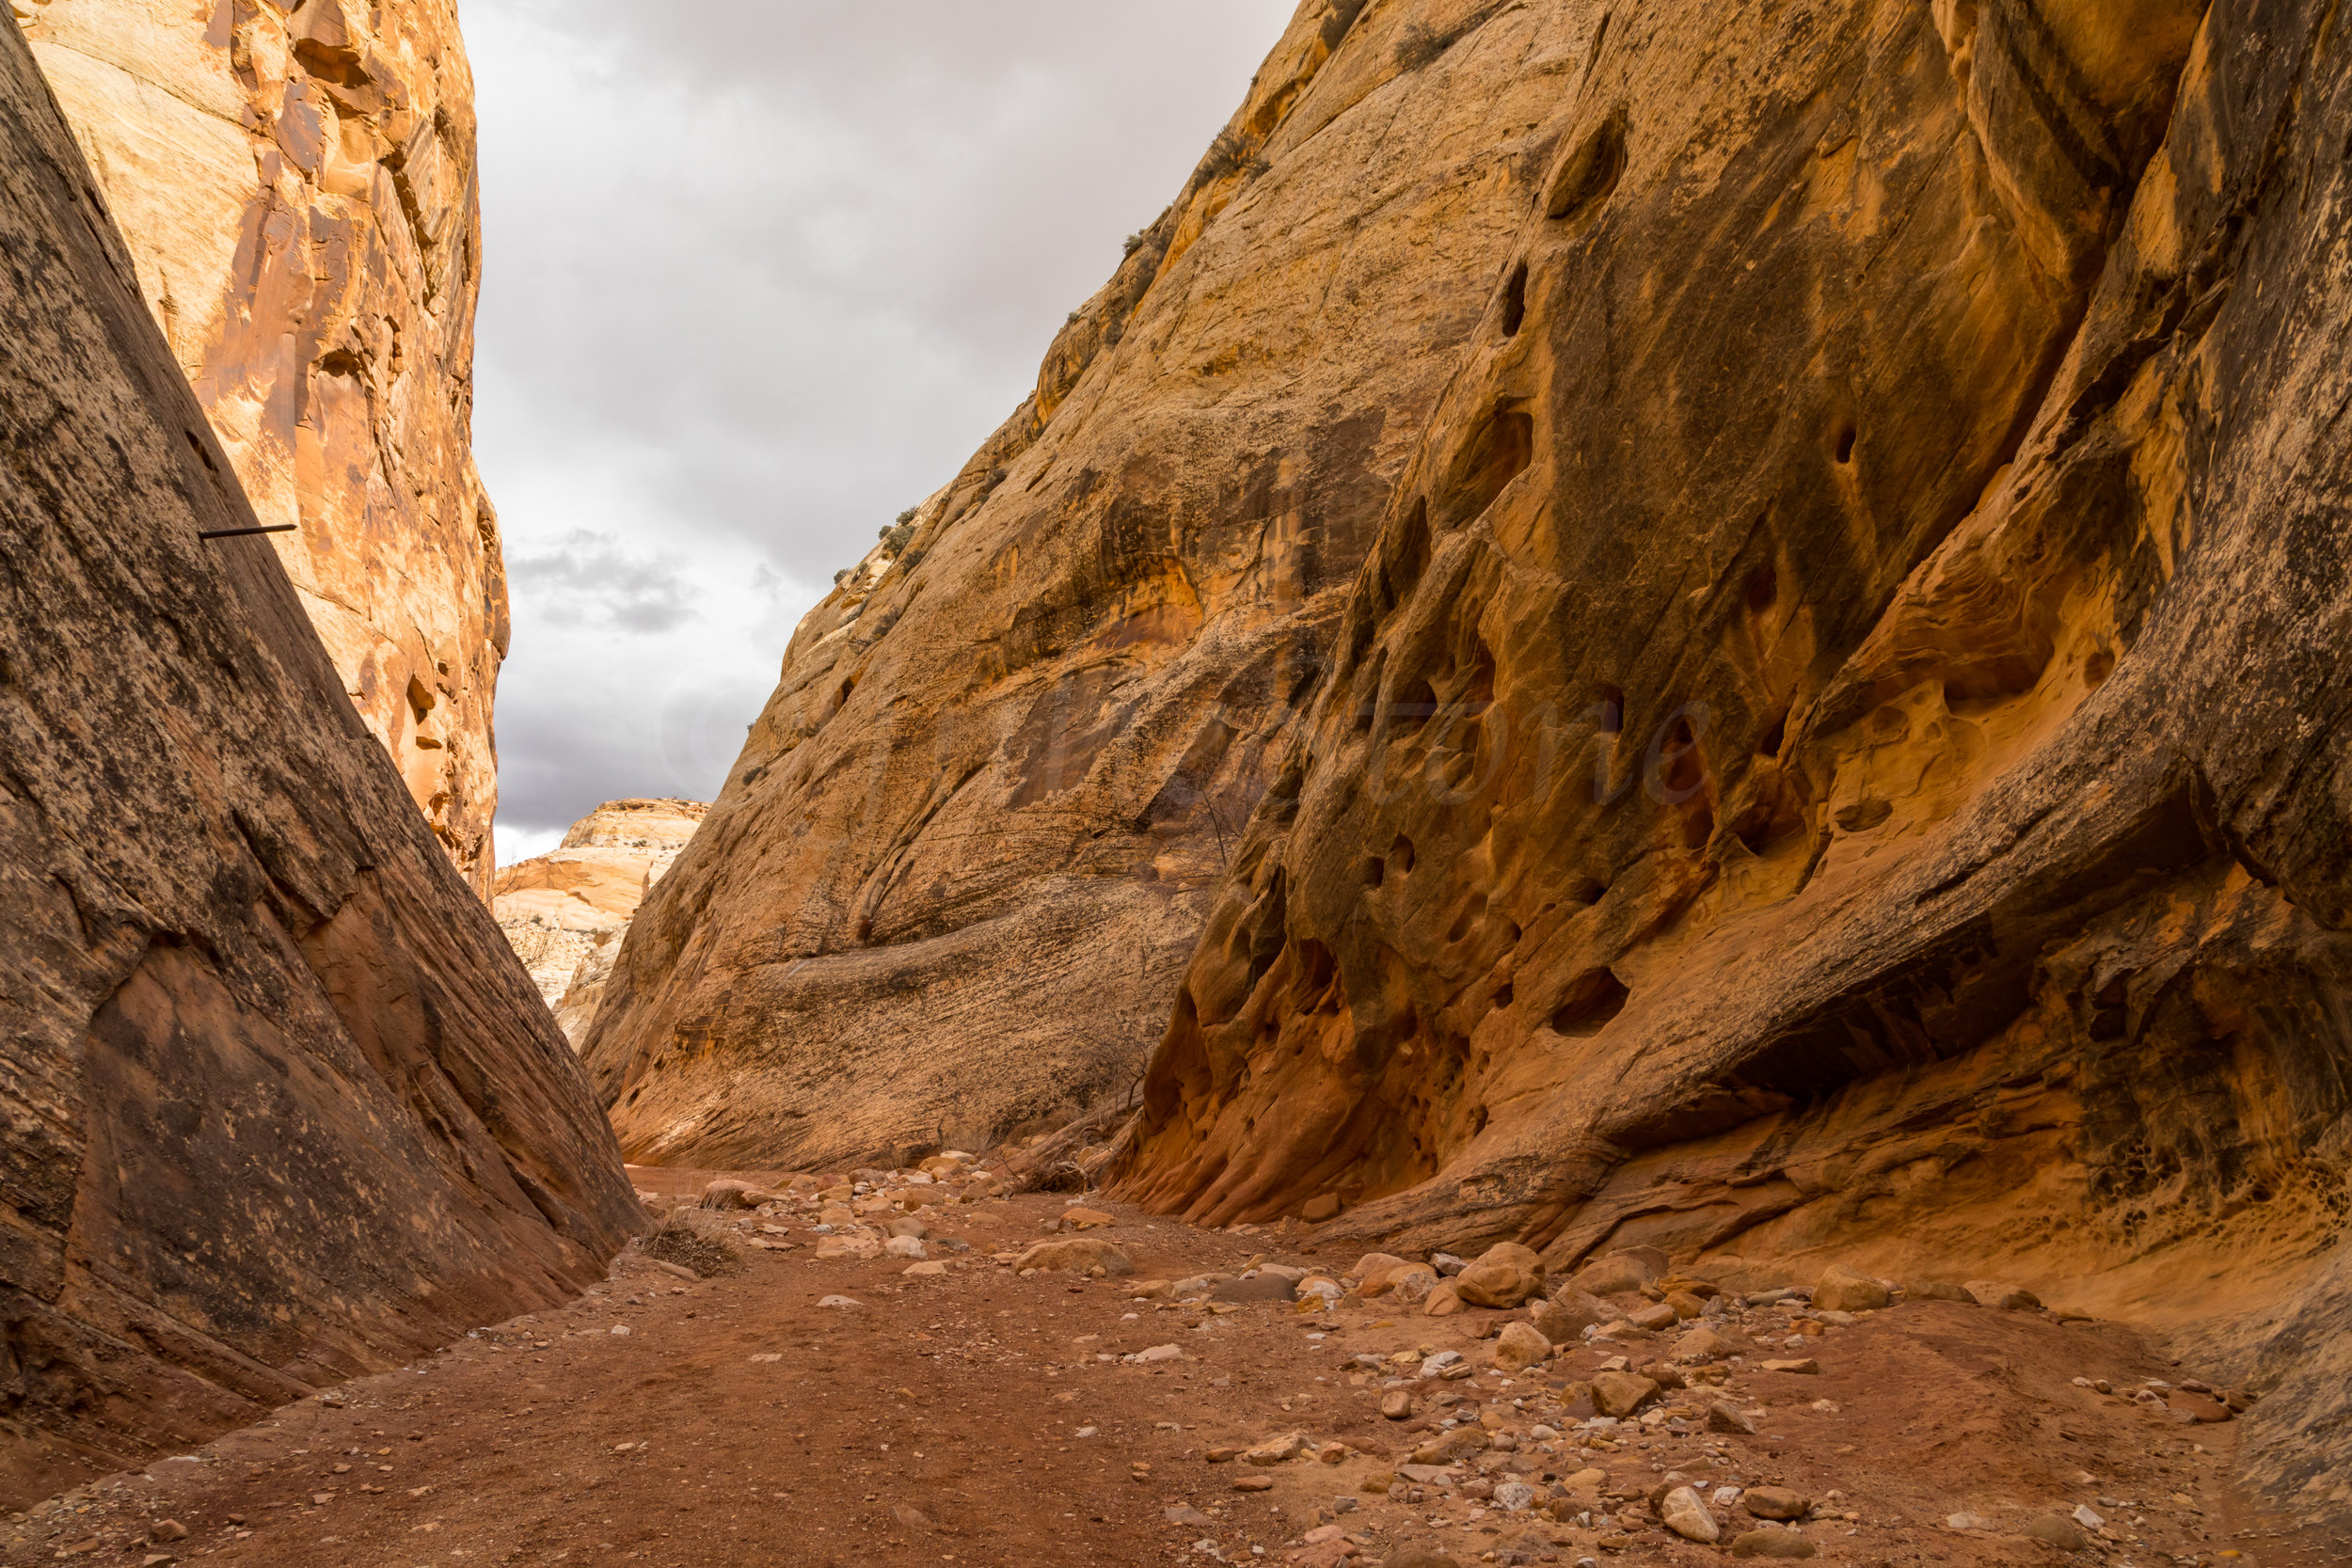 Capitol Reef National Park, Image # 0113